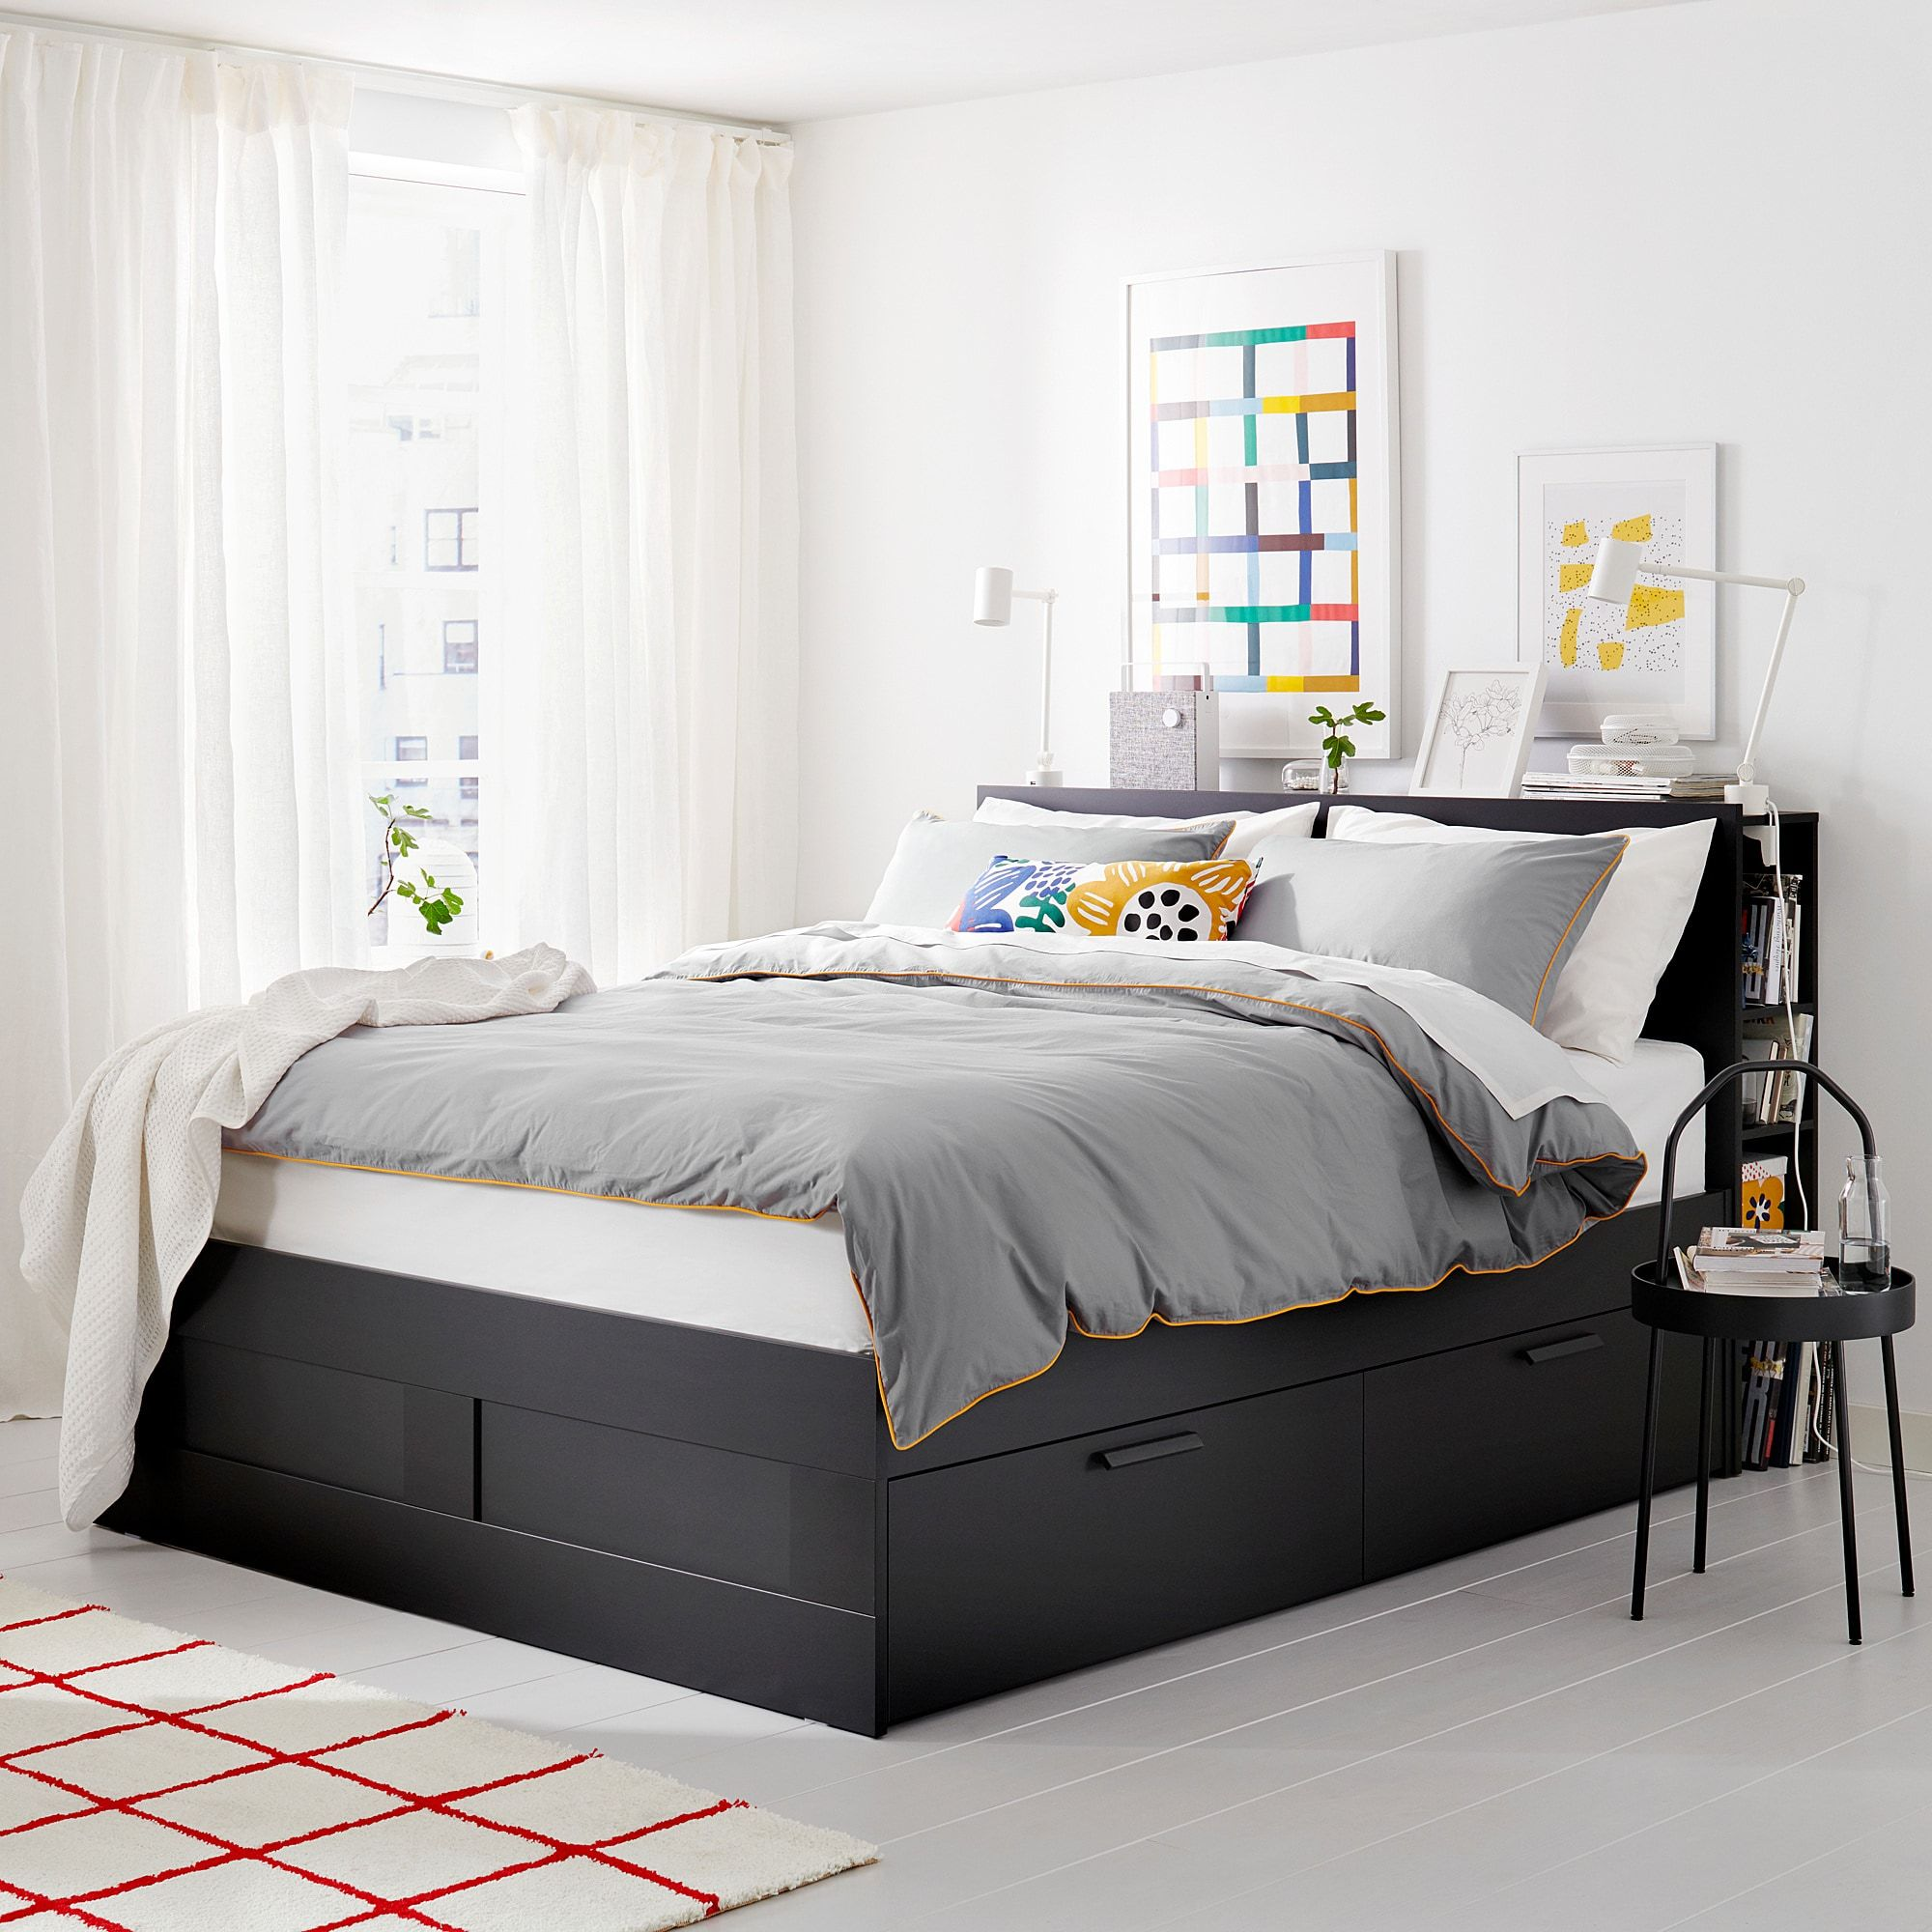 Ikea Brimnes Black Bed Frame With Storage Headboard Headboard